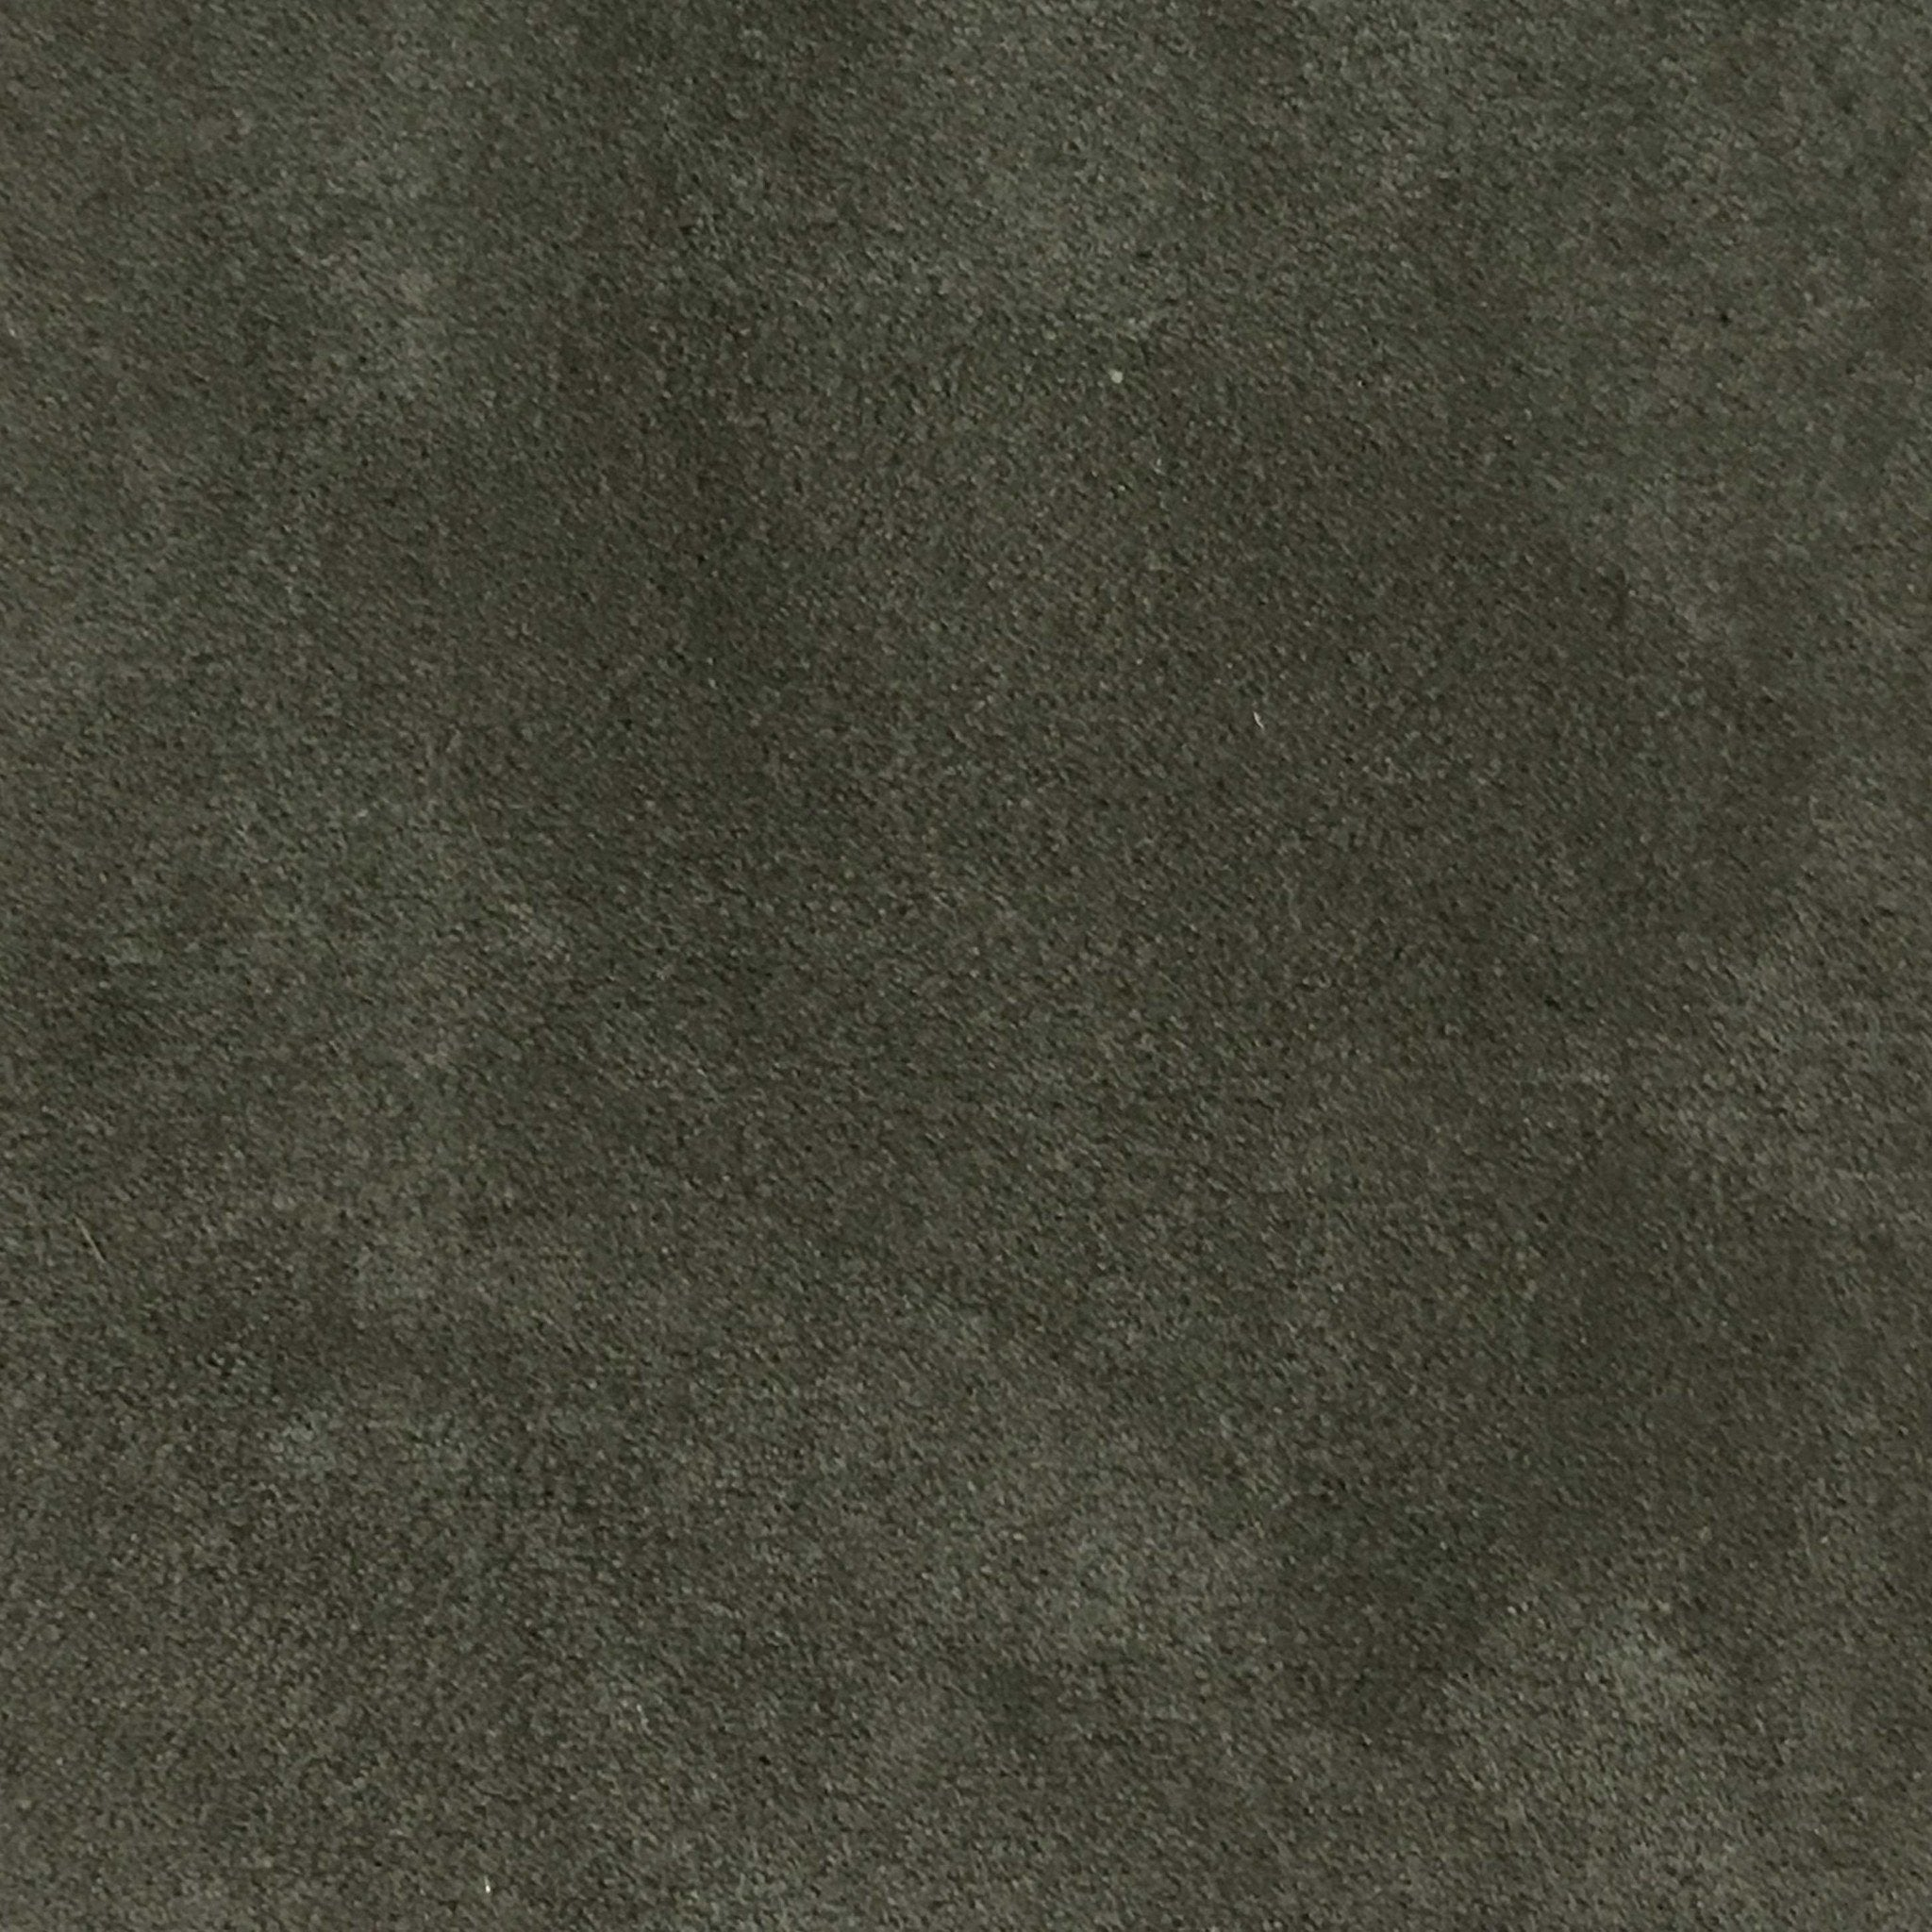 Durable Lightweight Soft Tan Rust Faux Suede Fabrics Interior Upholstery Fabric